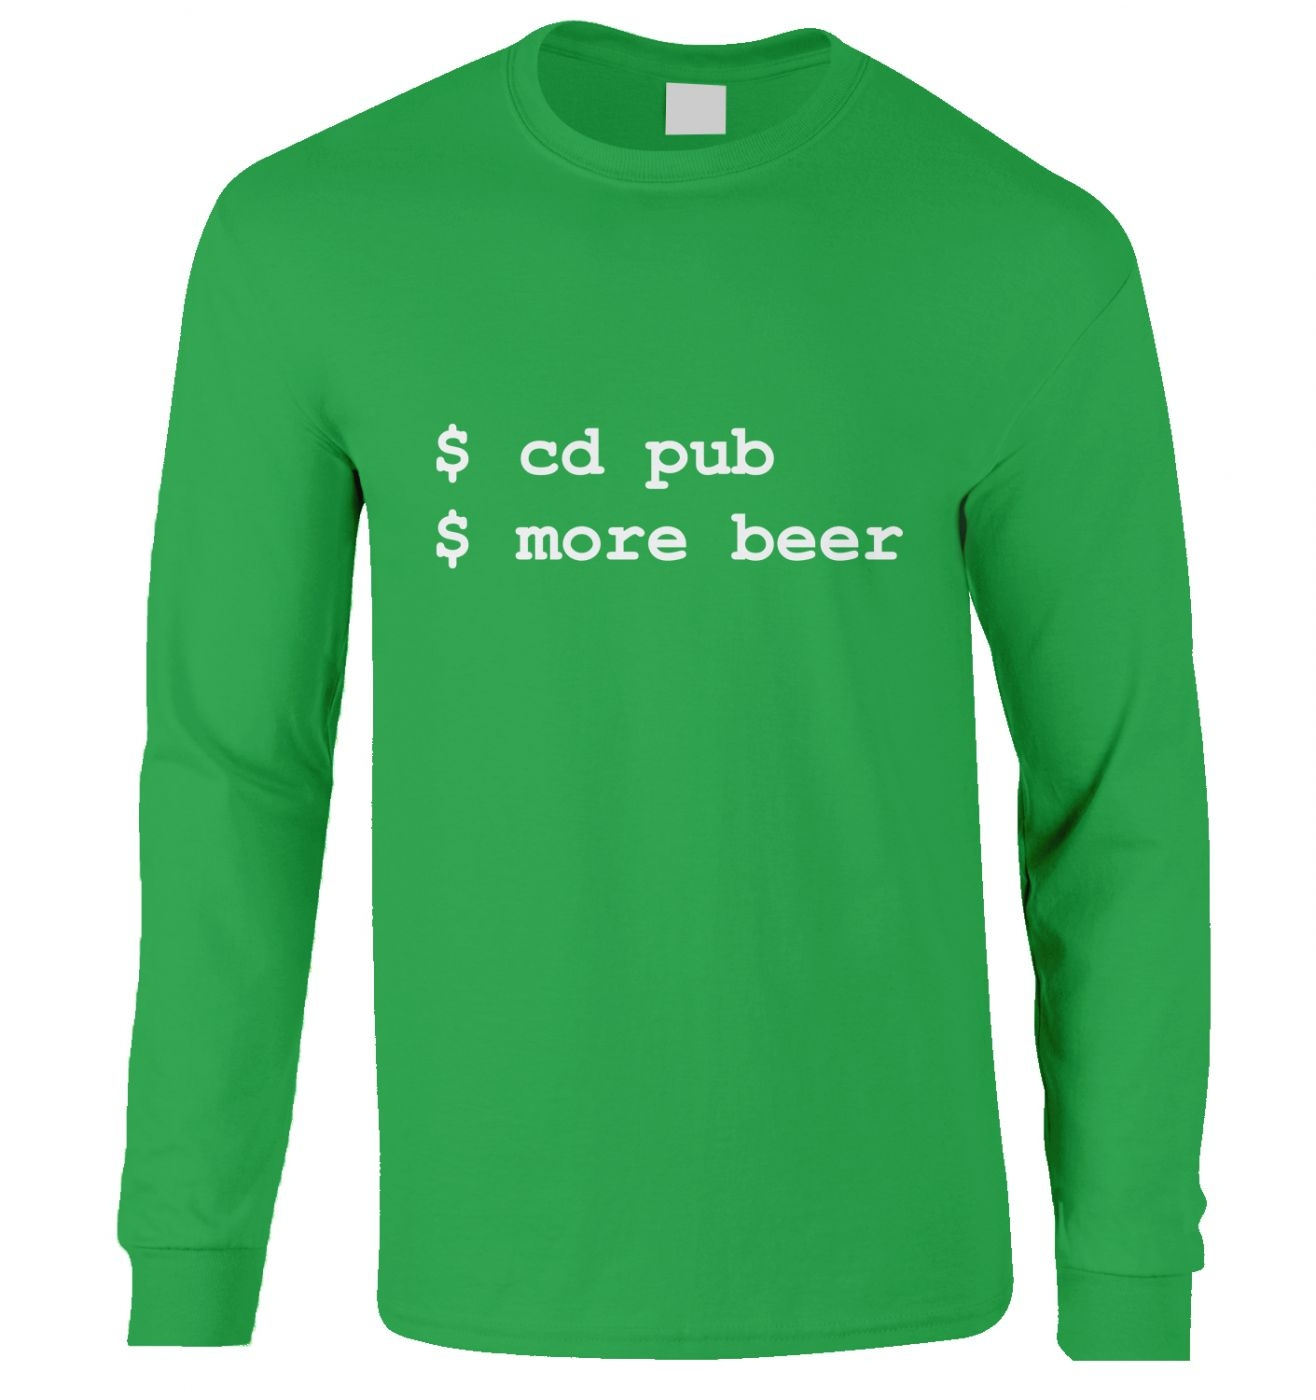 More Beer Linux long-sleeved t-shirt